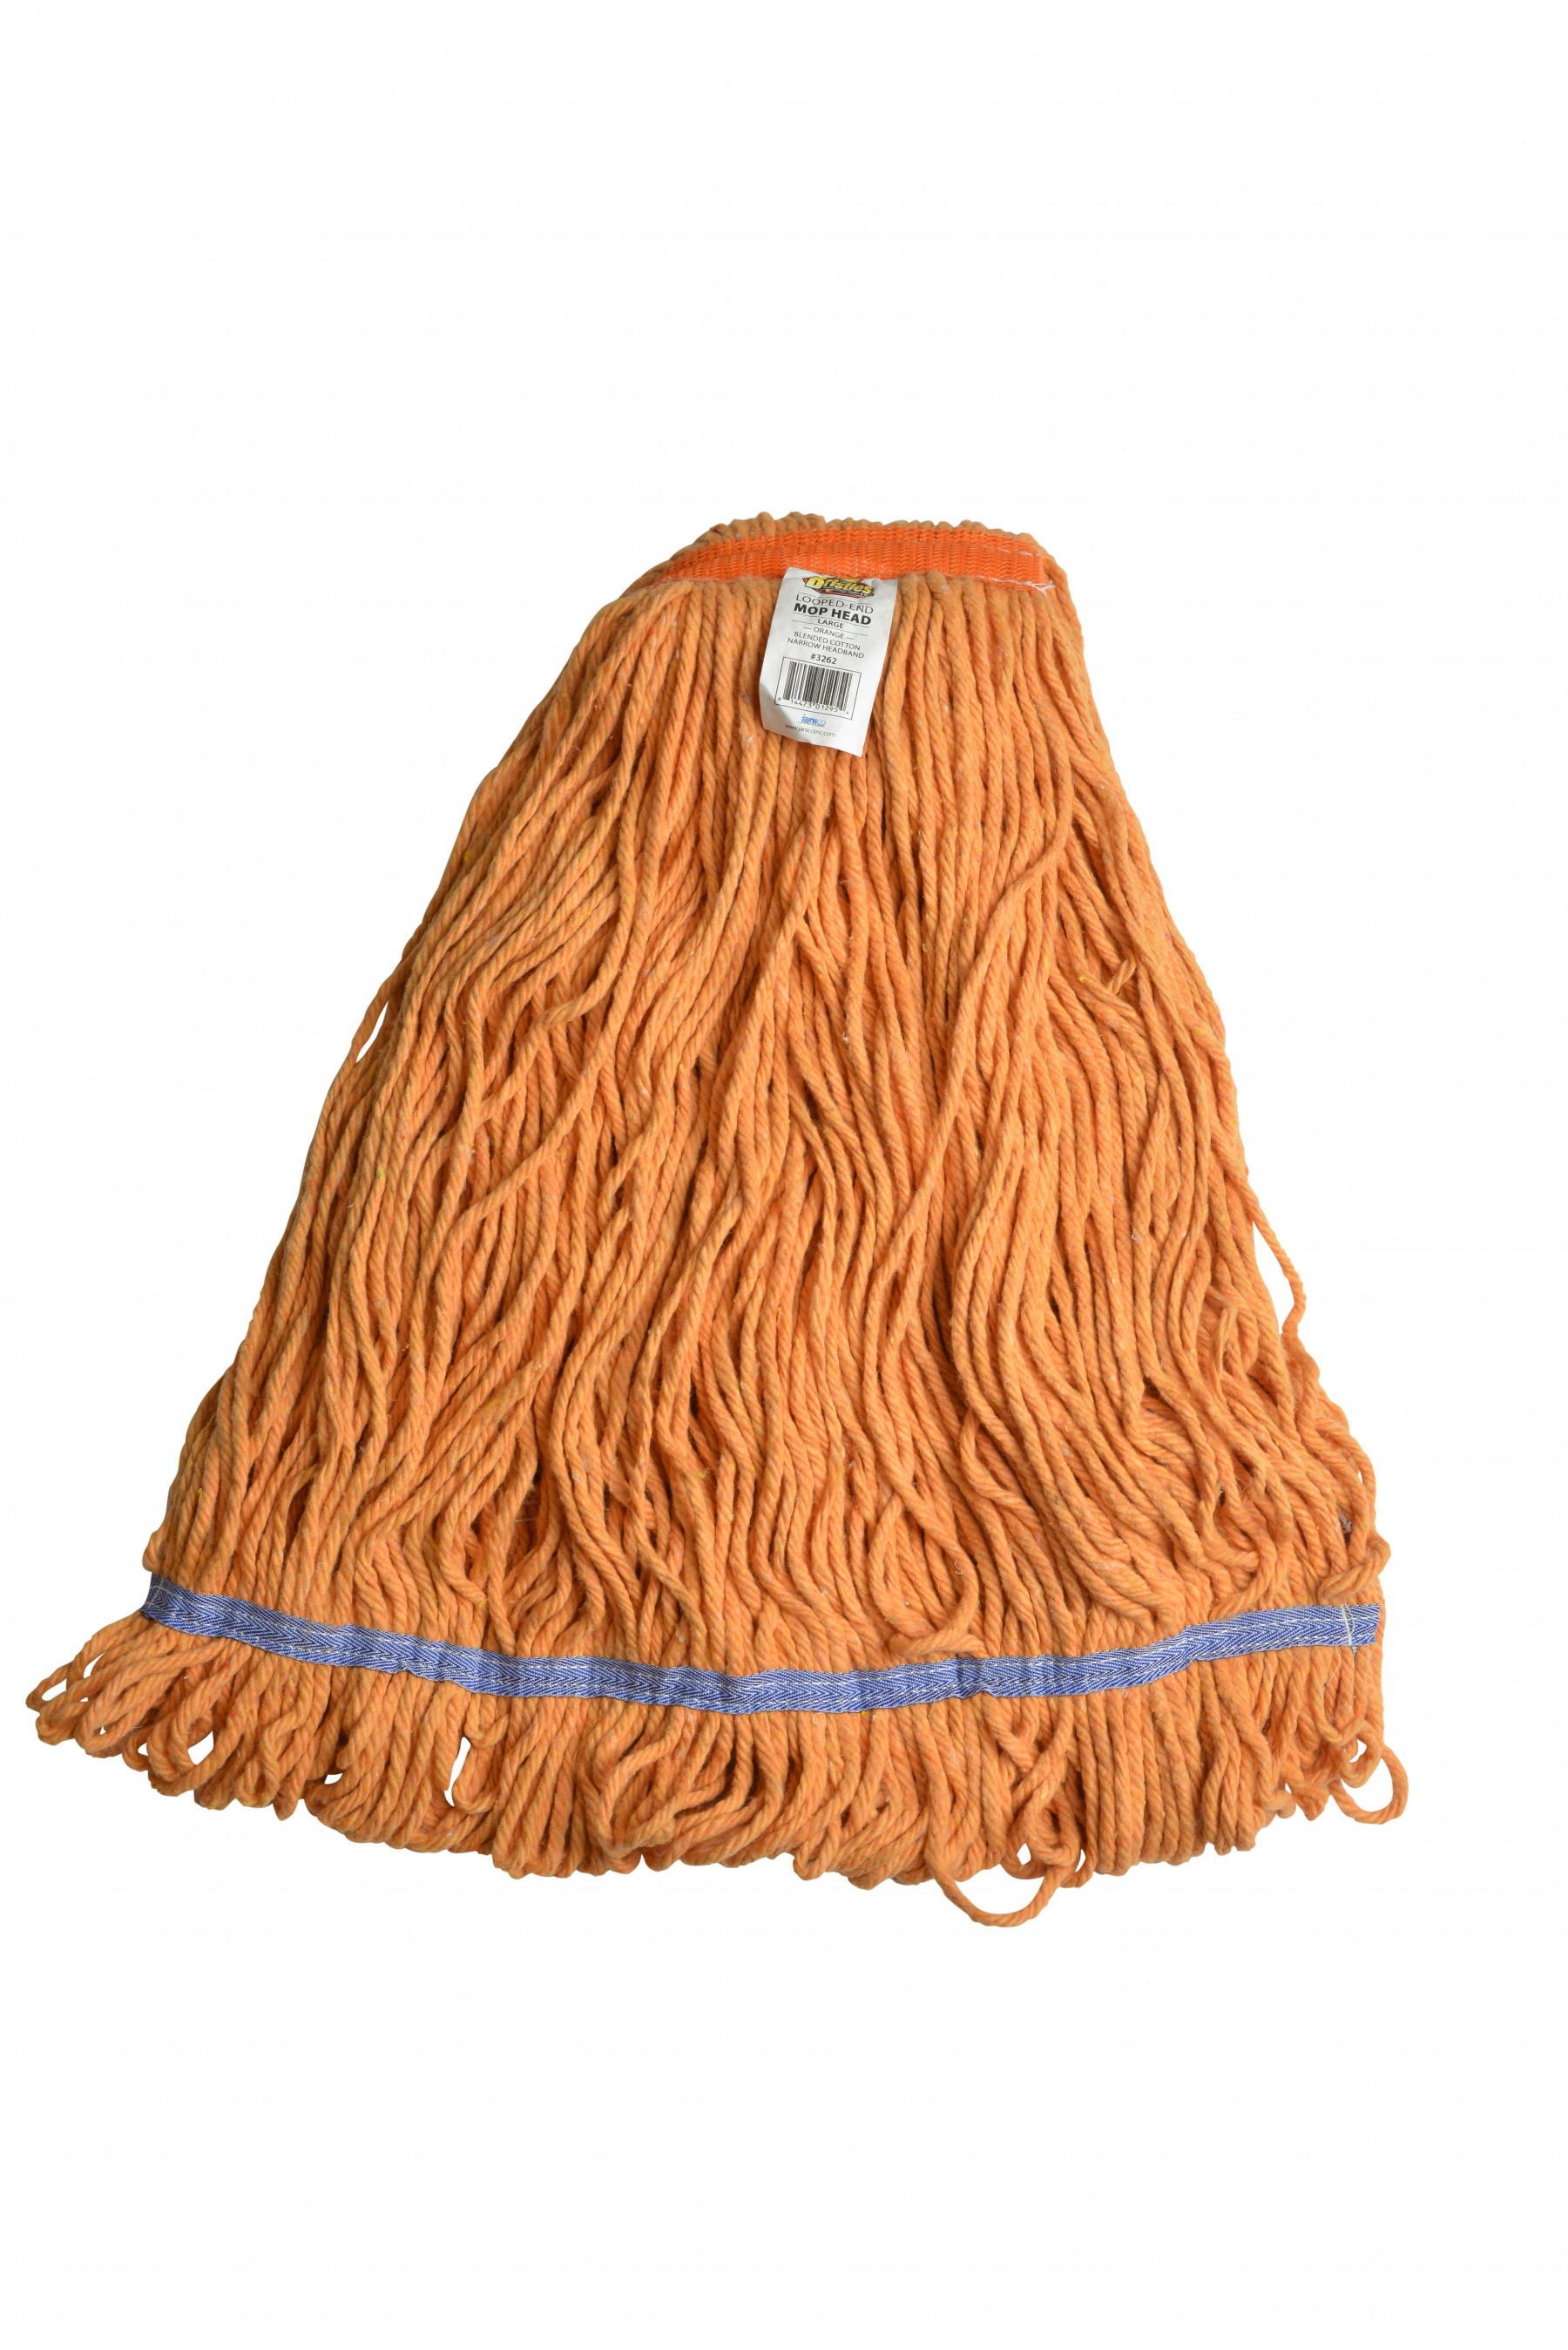 large orange blended cotton 1 inch narrow headband looped end mop head - Mop Head